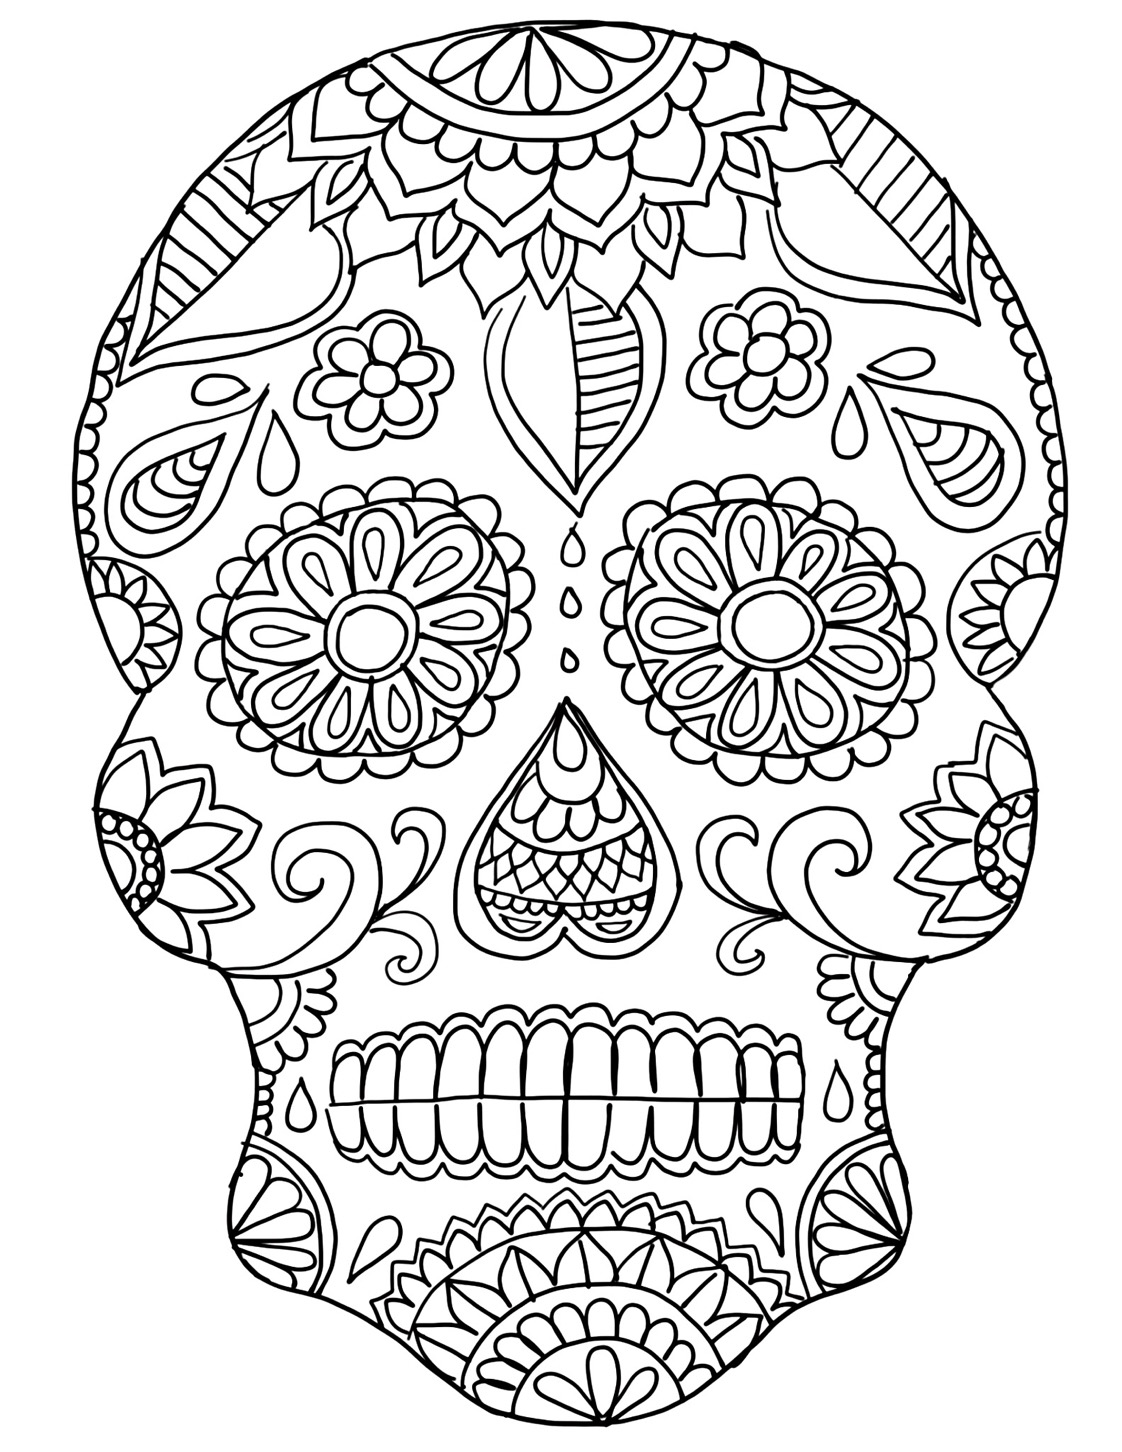 day of the dead template free printable day of the dead coloring pages best template day the of dead